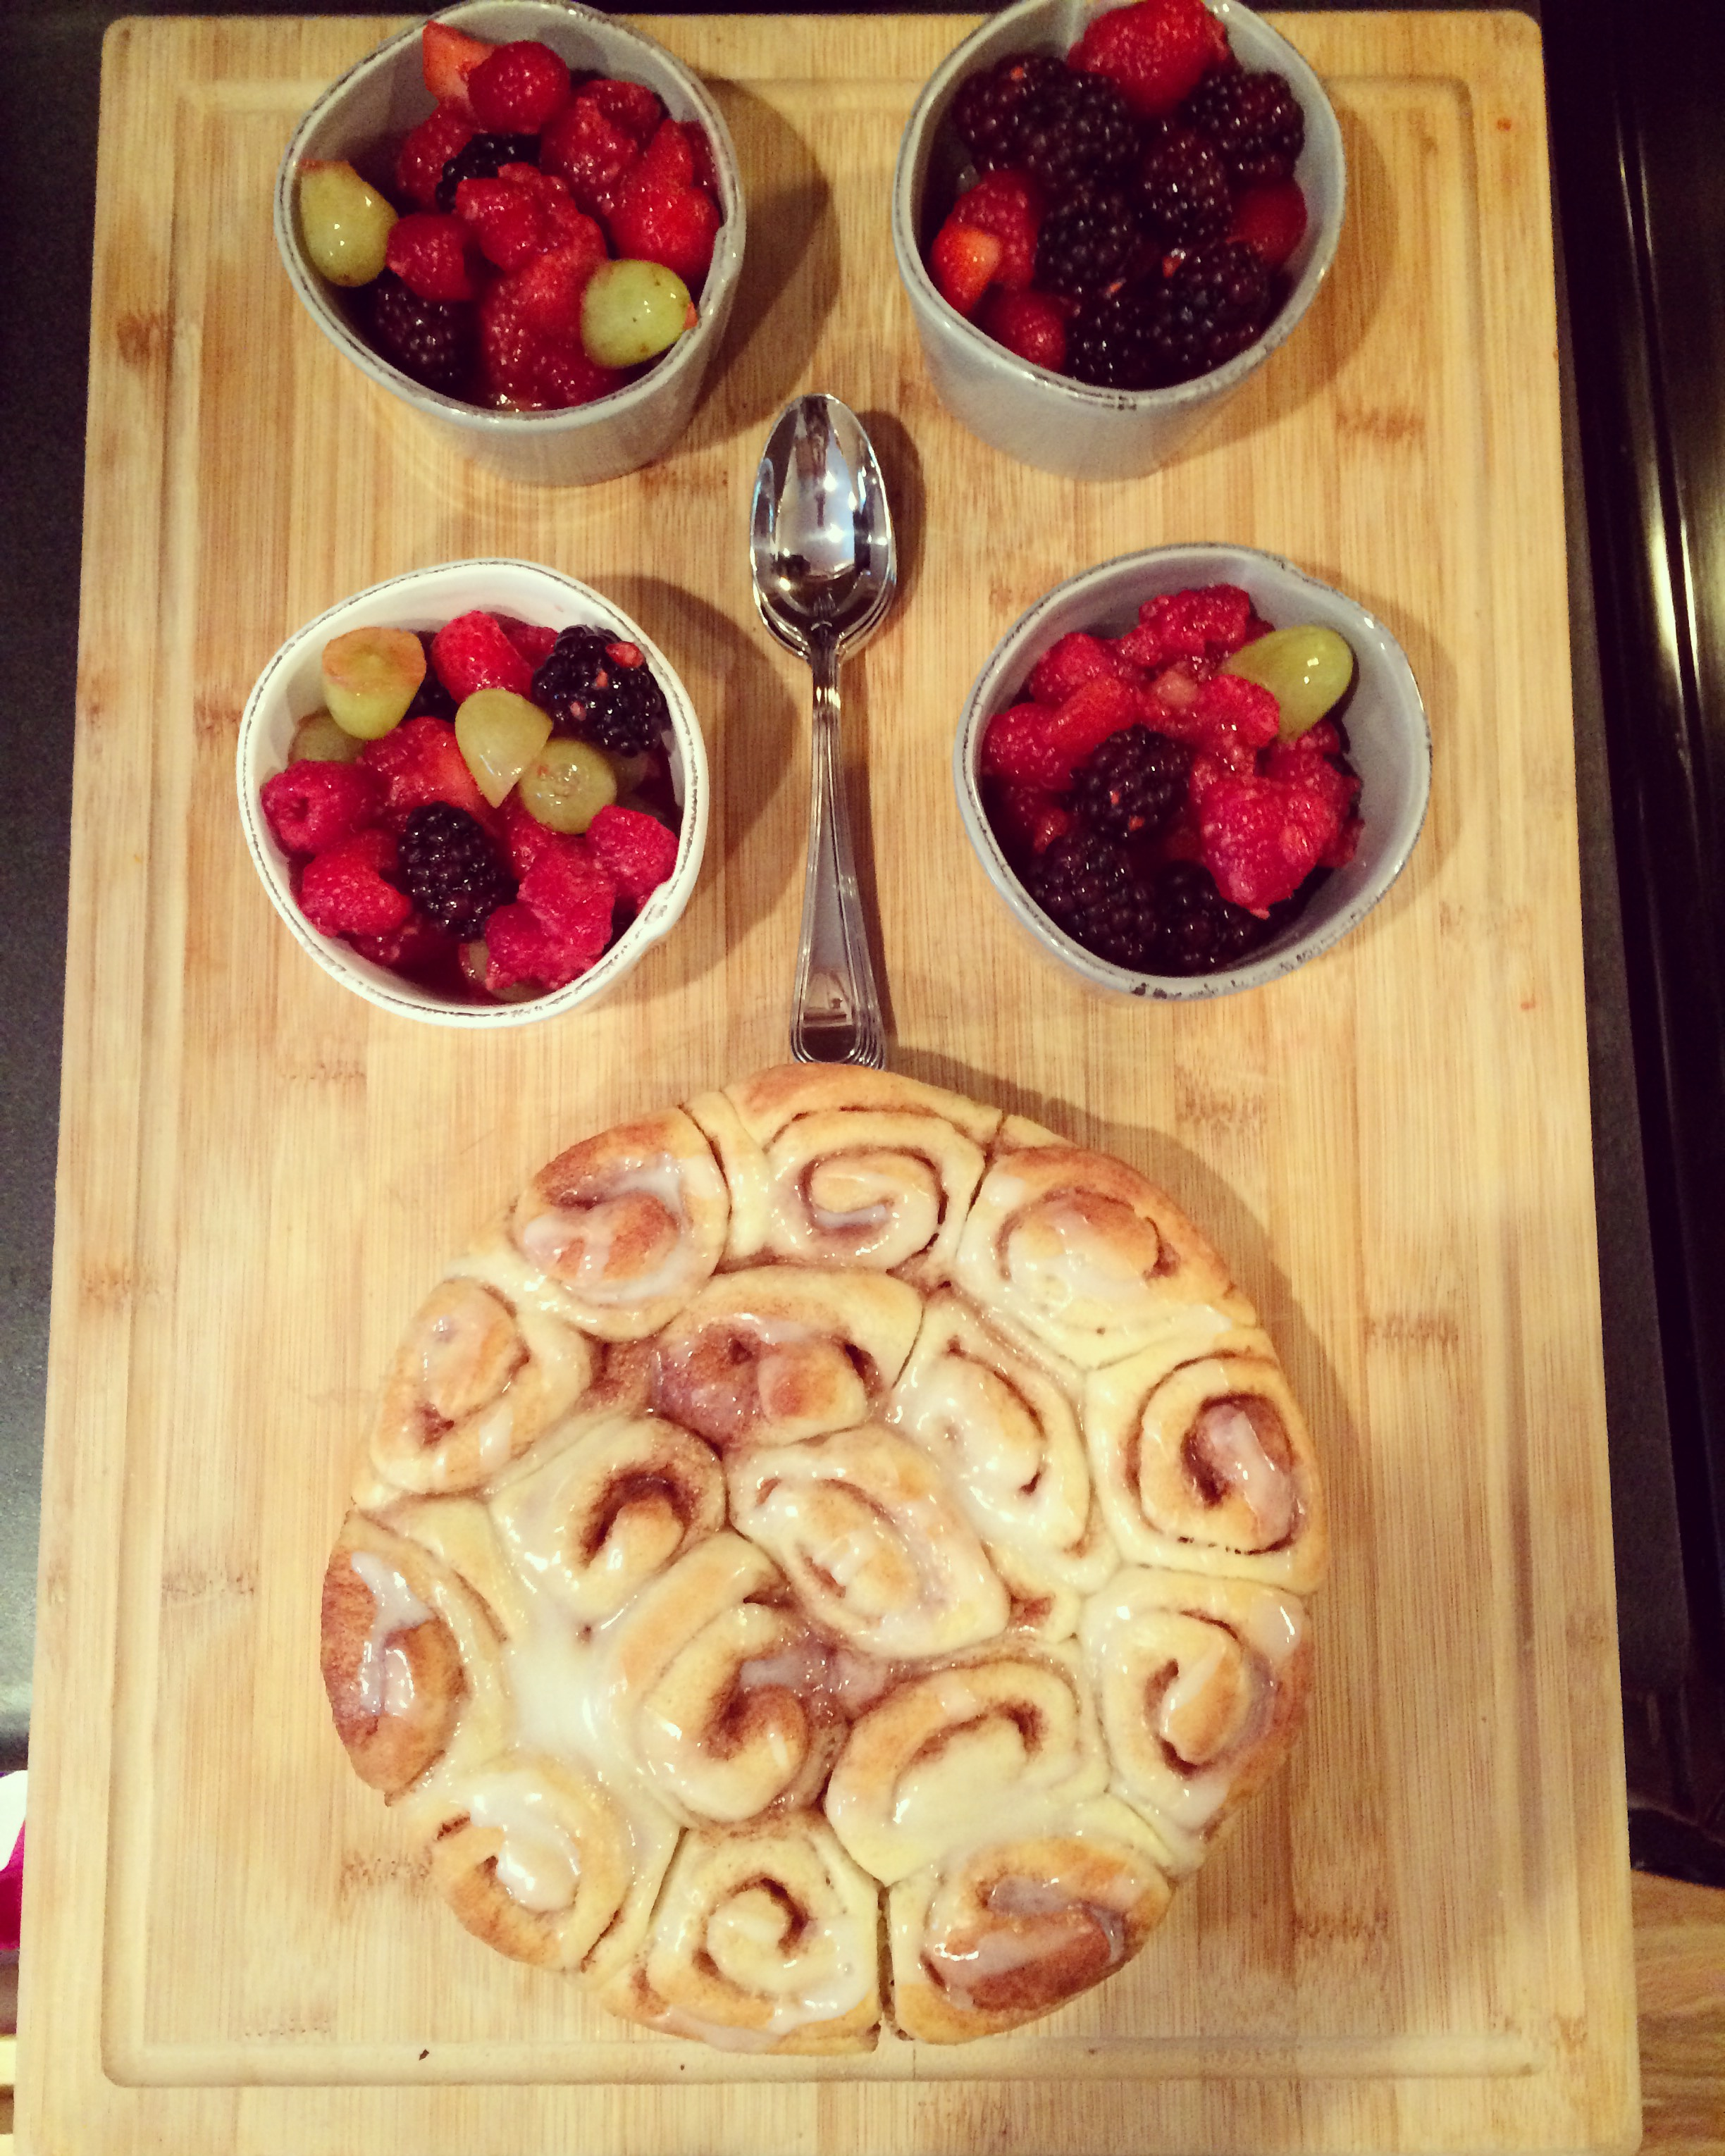 Normally I cook a full breakfast (eggs, bacon, yogurt, granola, berries, OJ, etc.), but this is a perfect quick option: Sister Schubert cinnamon rolls served with fruit and carried out onto the front porch to enjoy the fall temps.